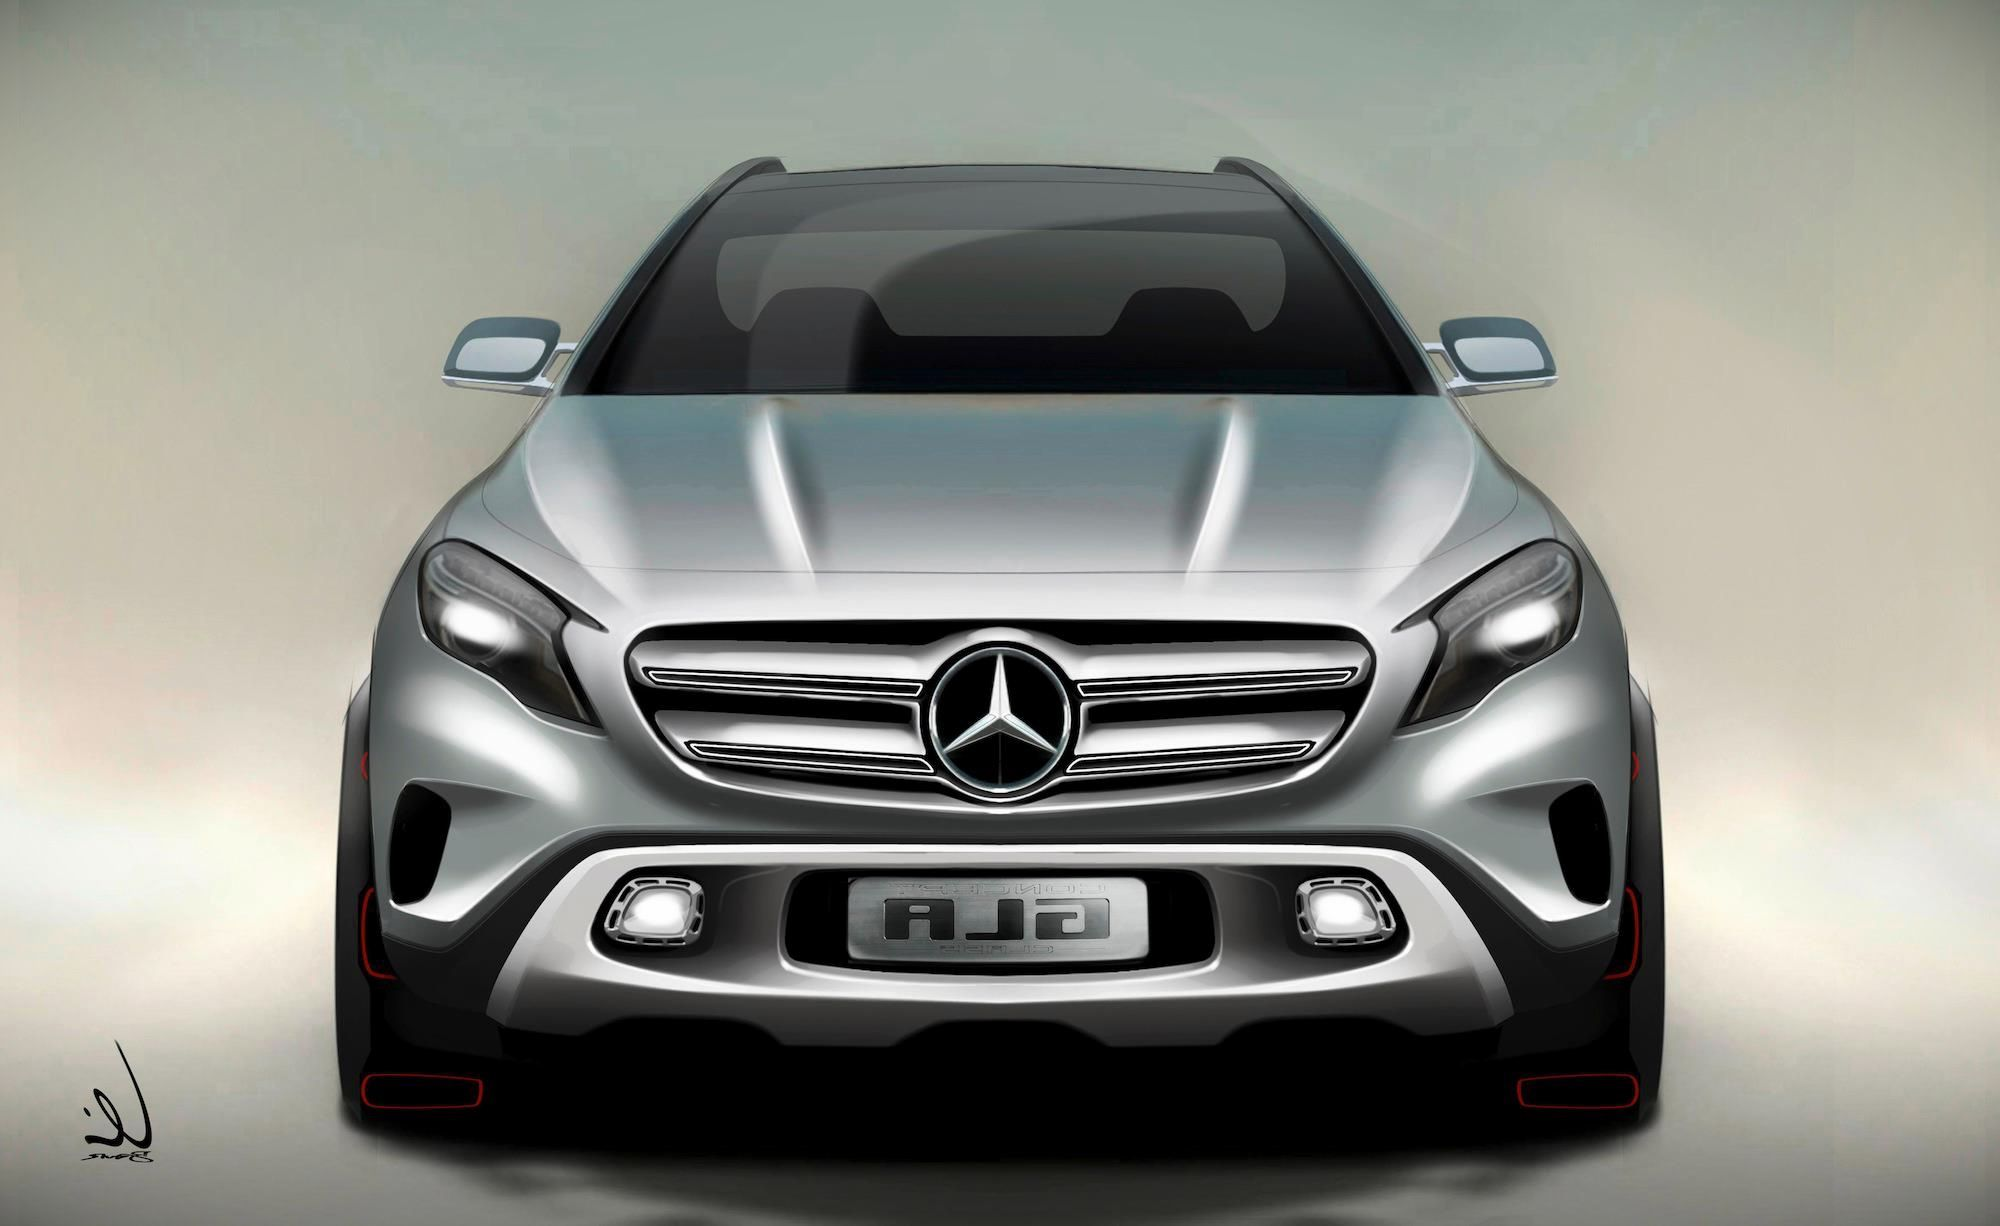 2018 Mercedes Benz GLA redesign pictures